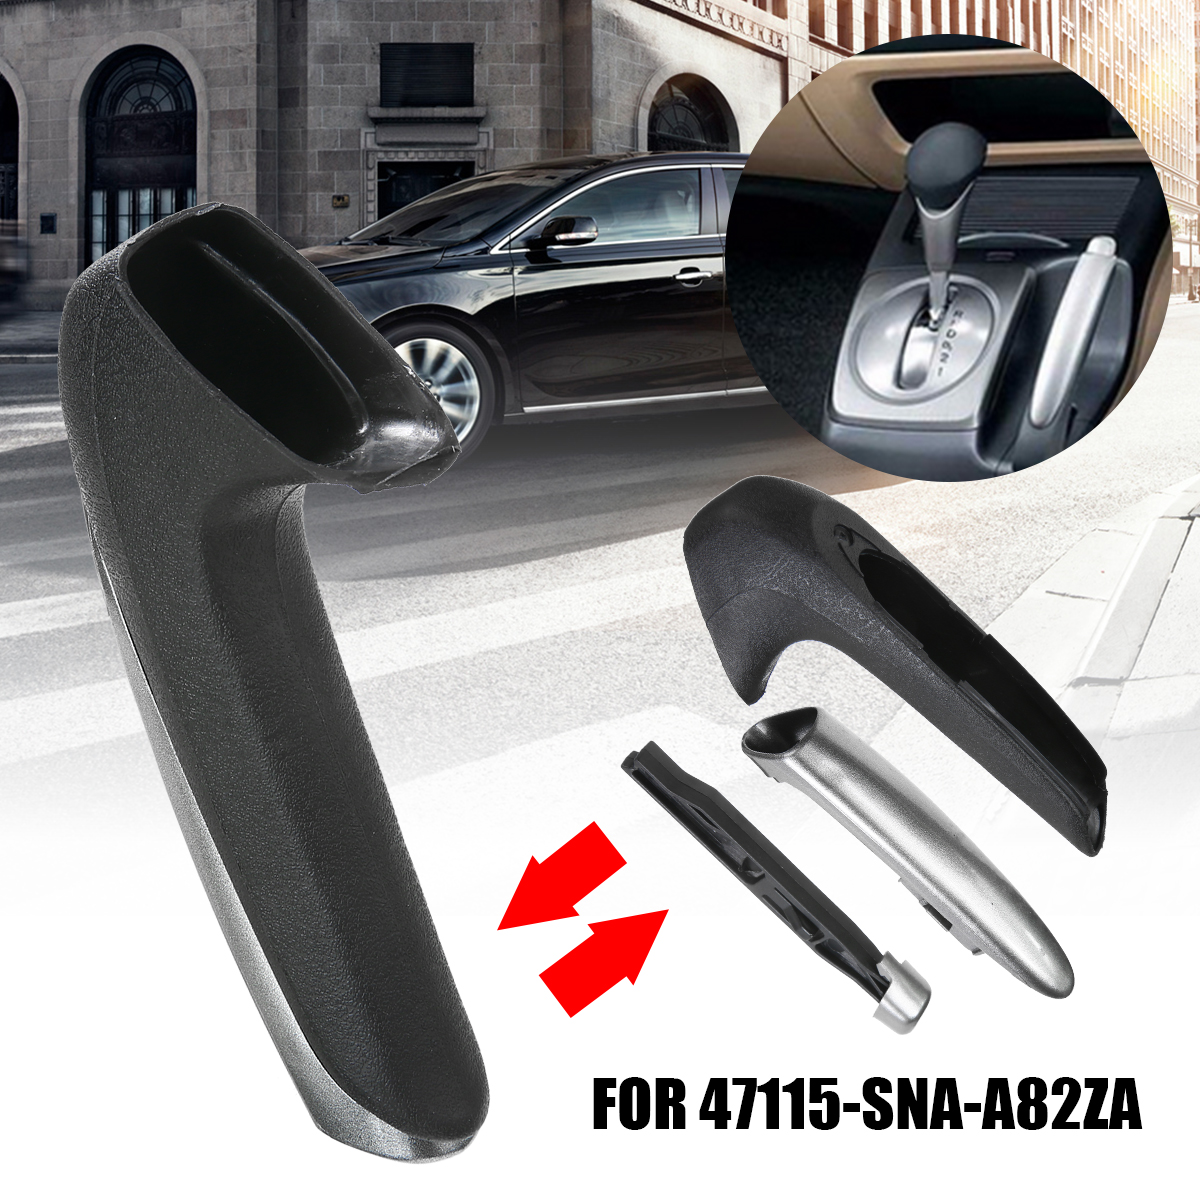 New Arrival 1pc Parking Brake Handle For Honda Civic 2006-2011 47115-SNA-A82ZA/47125-SNA-A82ZB